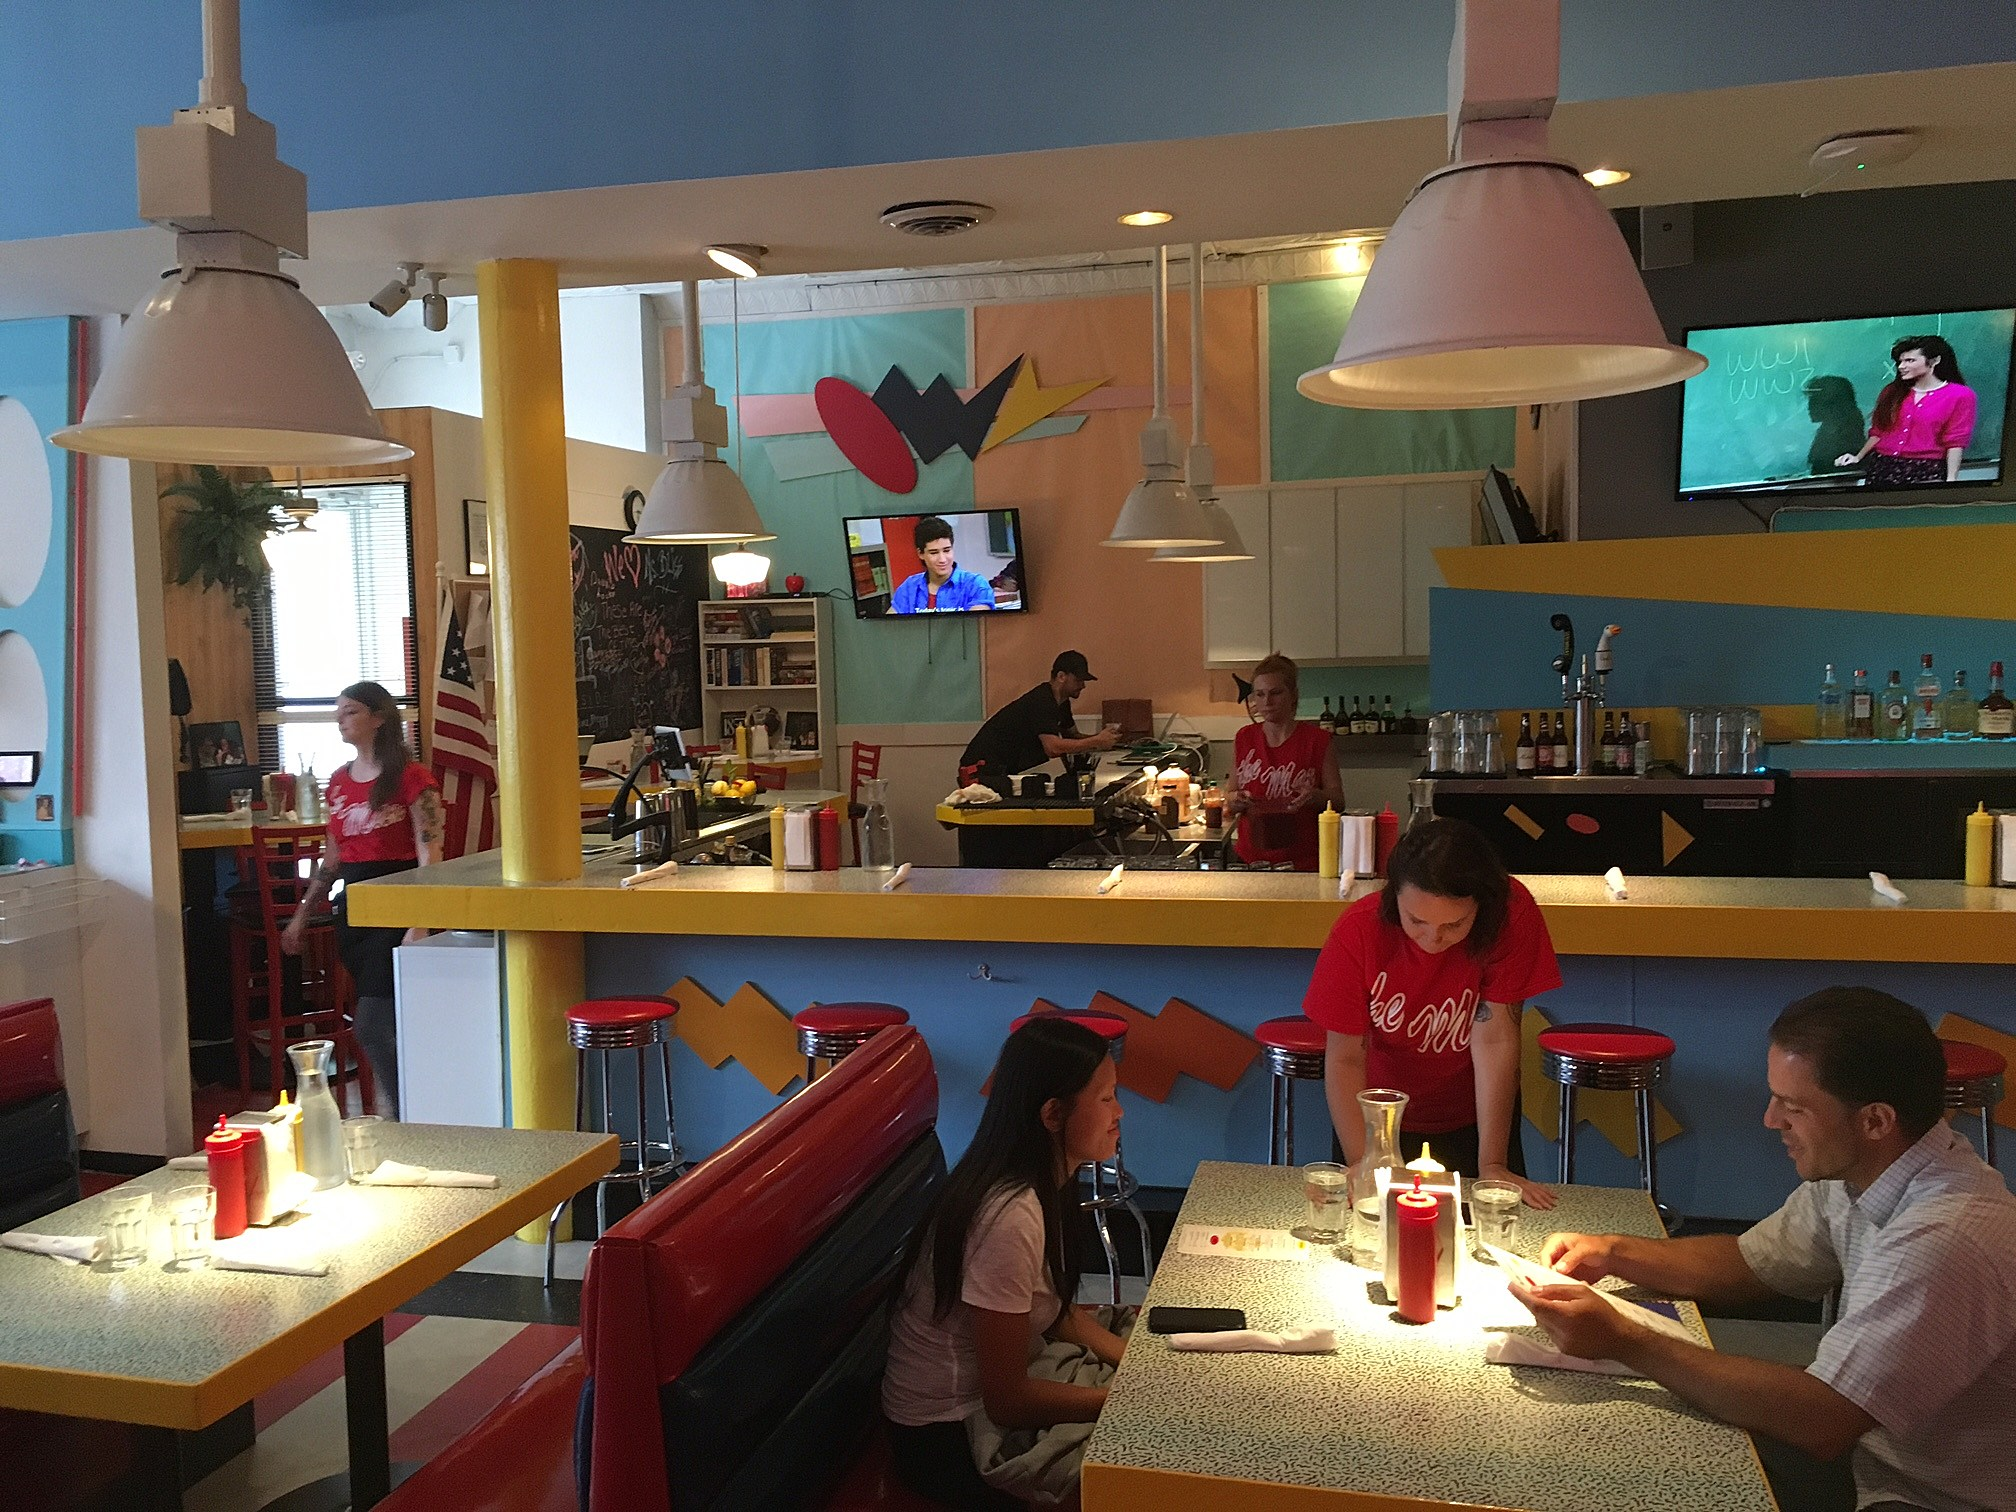 Rockfordians Flock To 'Saved By The Bell' Restaurant But Is It Any Good?